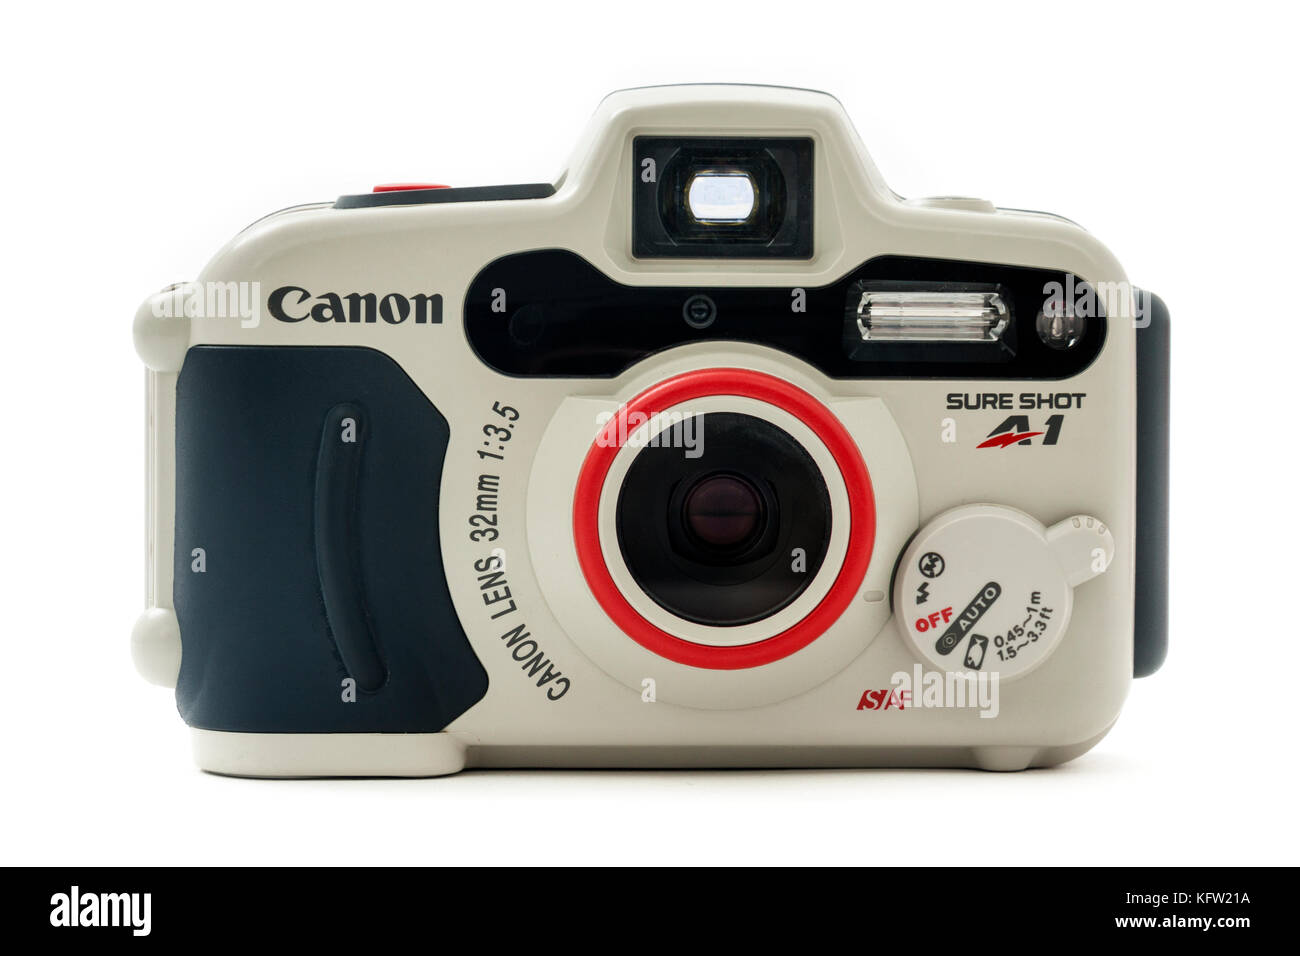 Canon SureShot A1 compact underwater autofocus 35mm film camera from 1994 Stock Photo